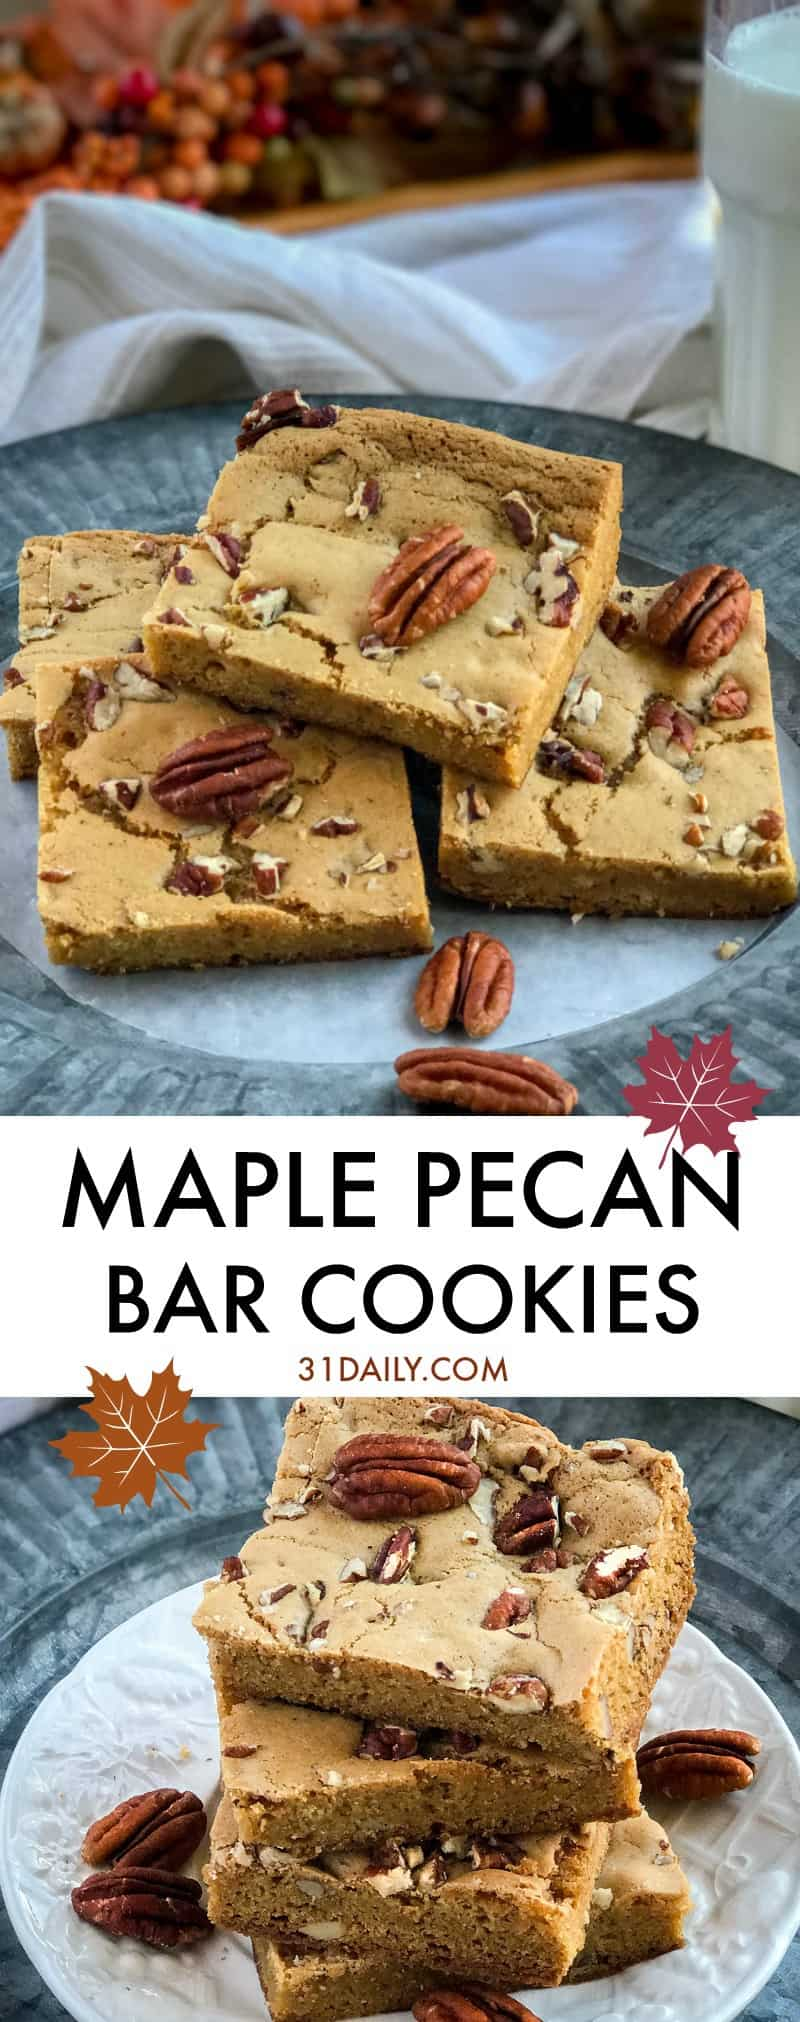 Vermont Maple Pecan Bar Cookies | 31Daily.com